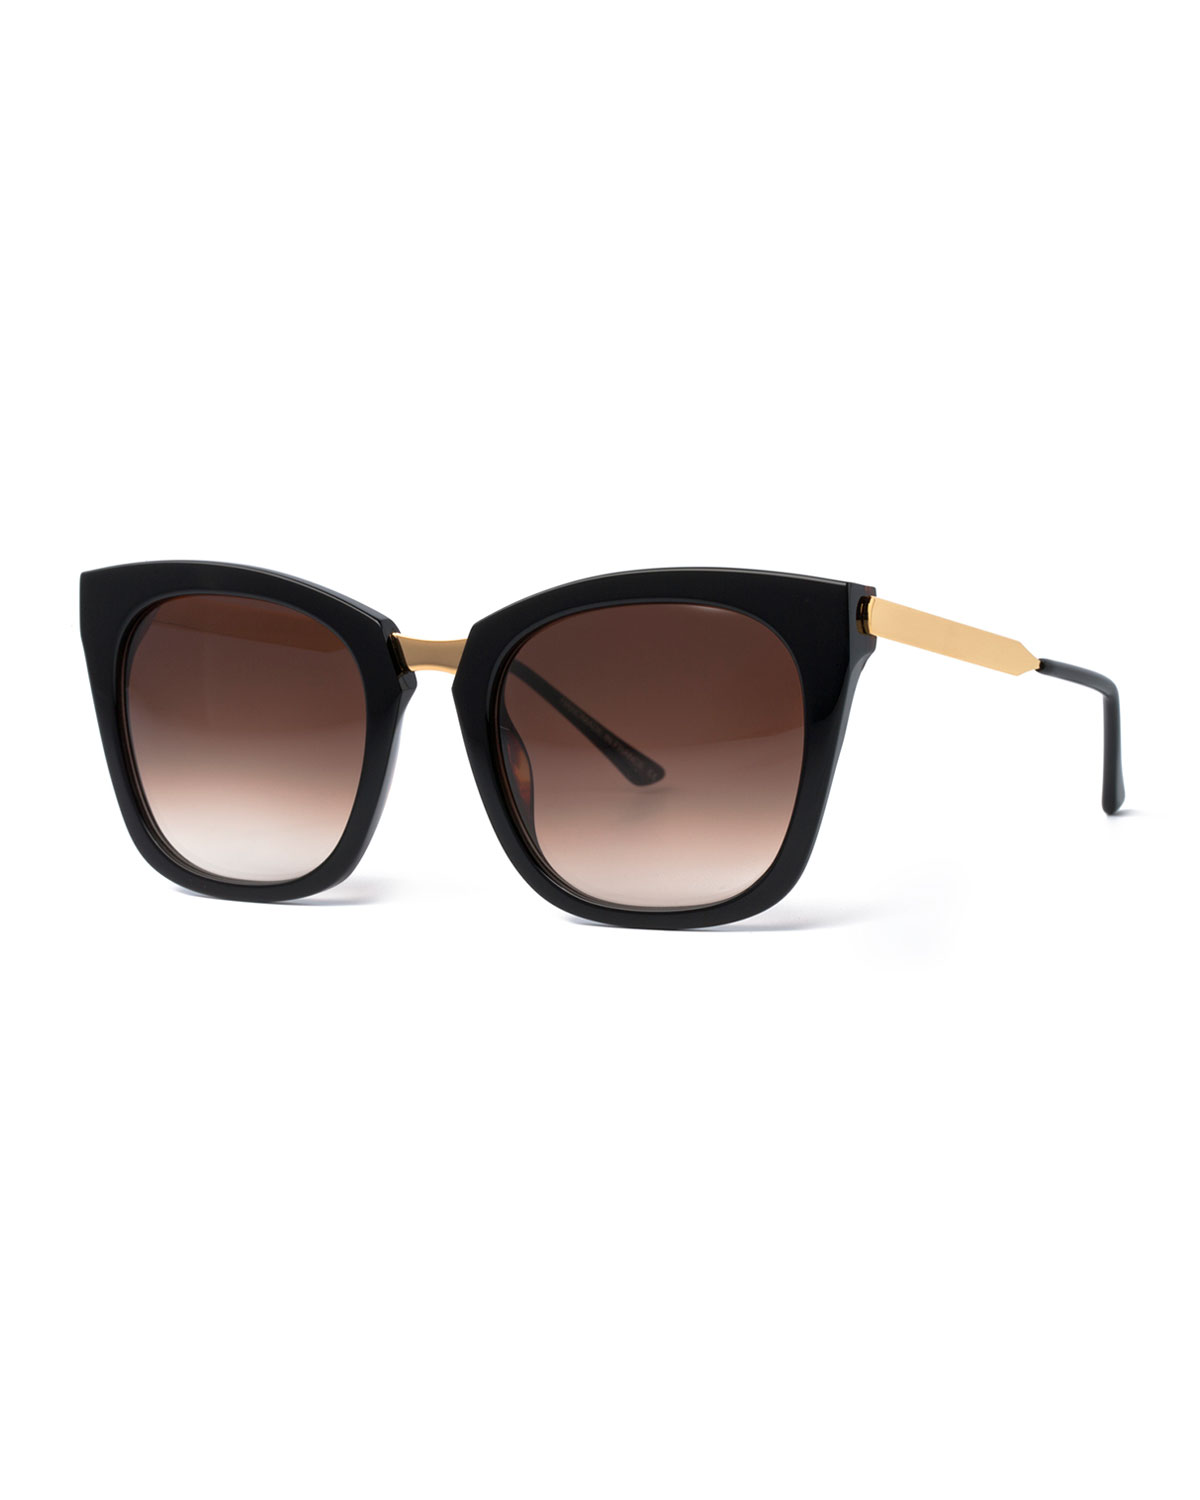 29d354f777 Thierry Lasry Narcissy Square Acetate Sunglasses